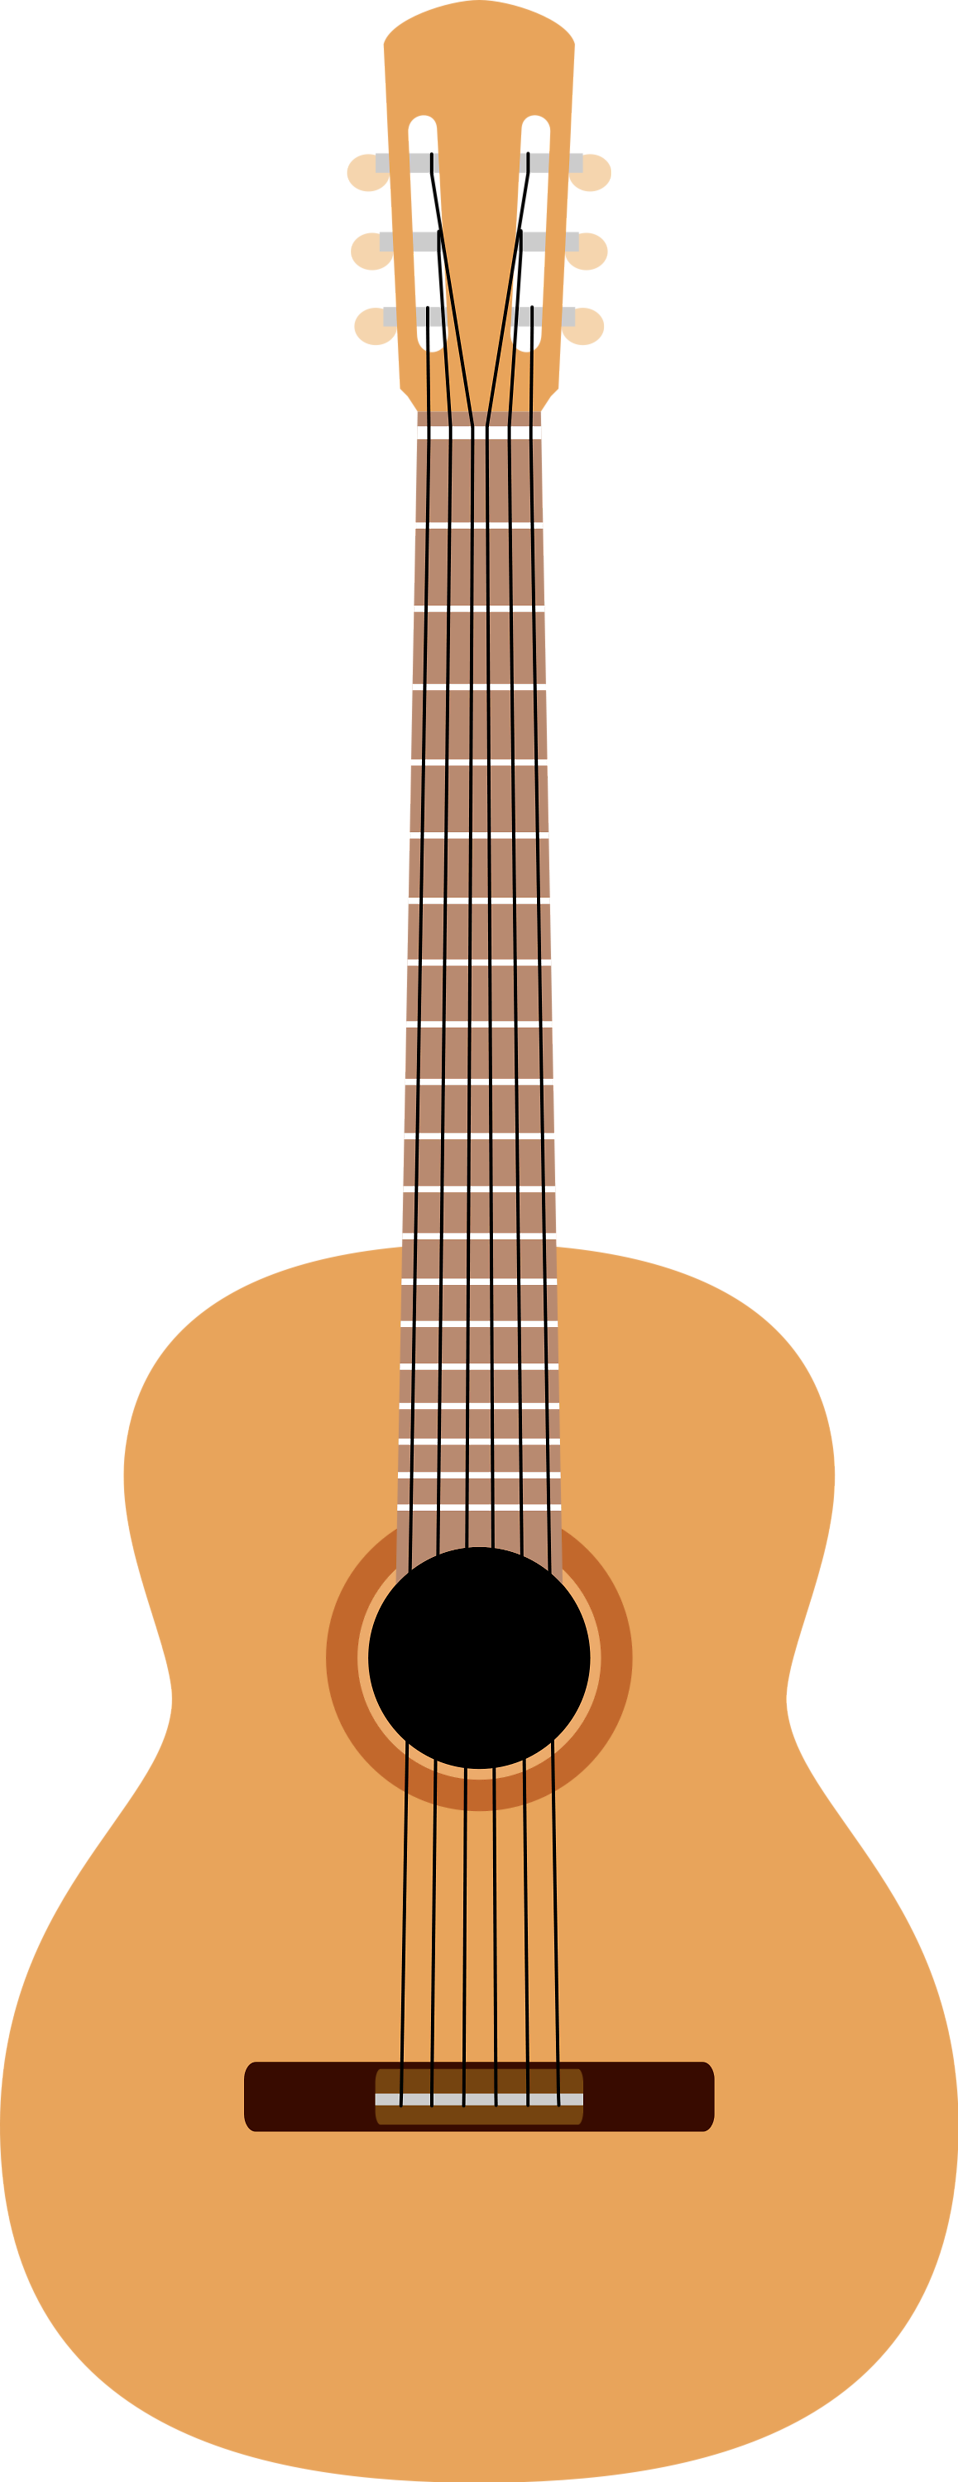 Clipart guitar concert. Illustrations free stock photo